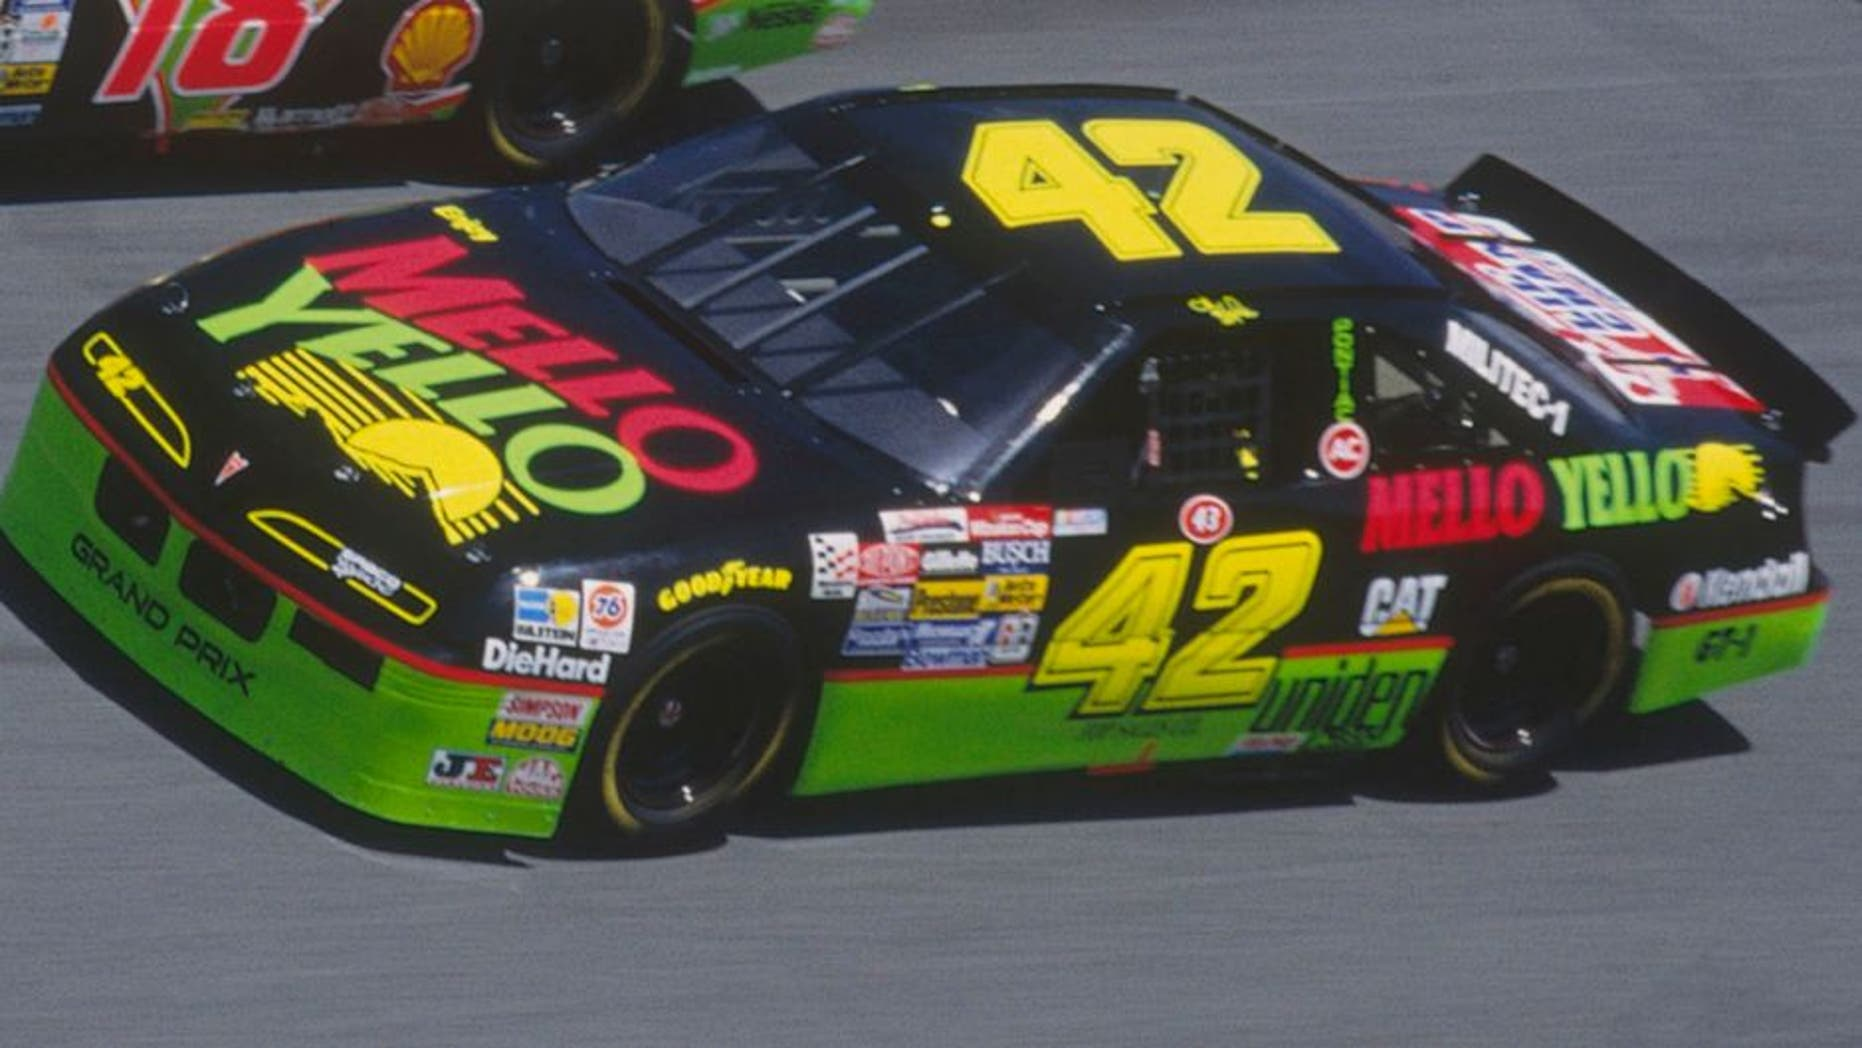 DAYTONA BEACH, FL - FEBRUARY 14: Dale Jarrett drives his Interstate Batteries #18 car down a turn against Kyle Petty in his Mello Yello #42 car during the Daytona 500 at the Daytona Speedway on February 14, 1993 in Daytona Beach, Florida. (Photo by Focus on Sport/Getty Images)